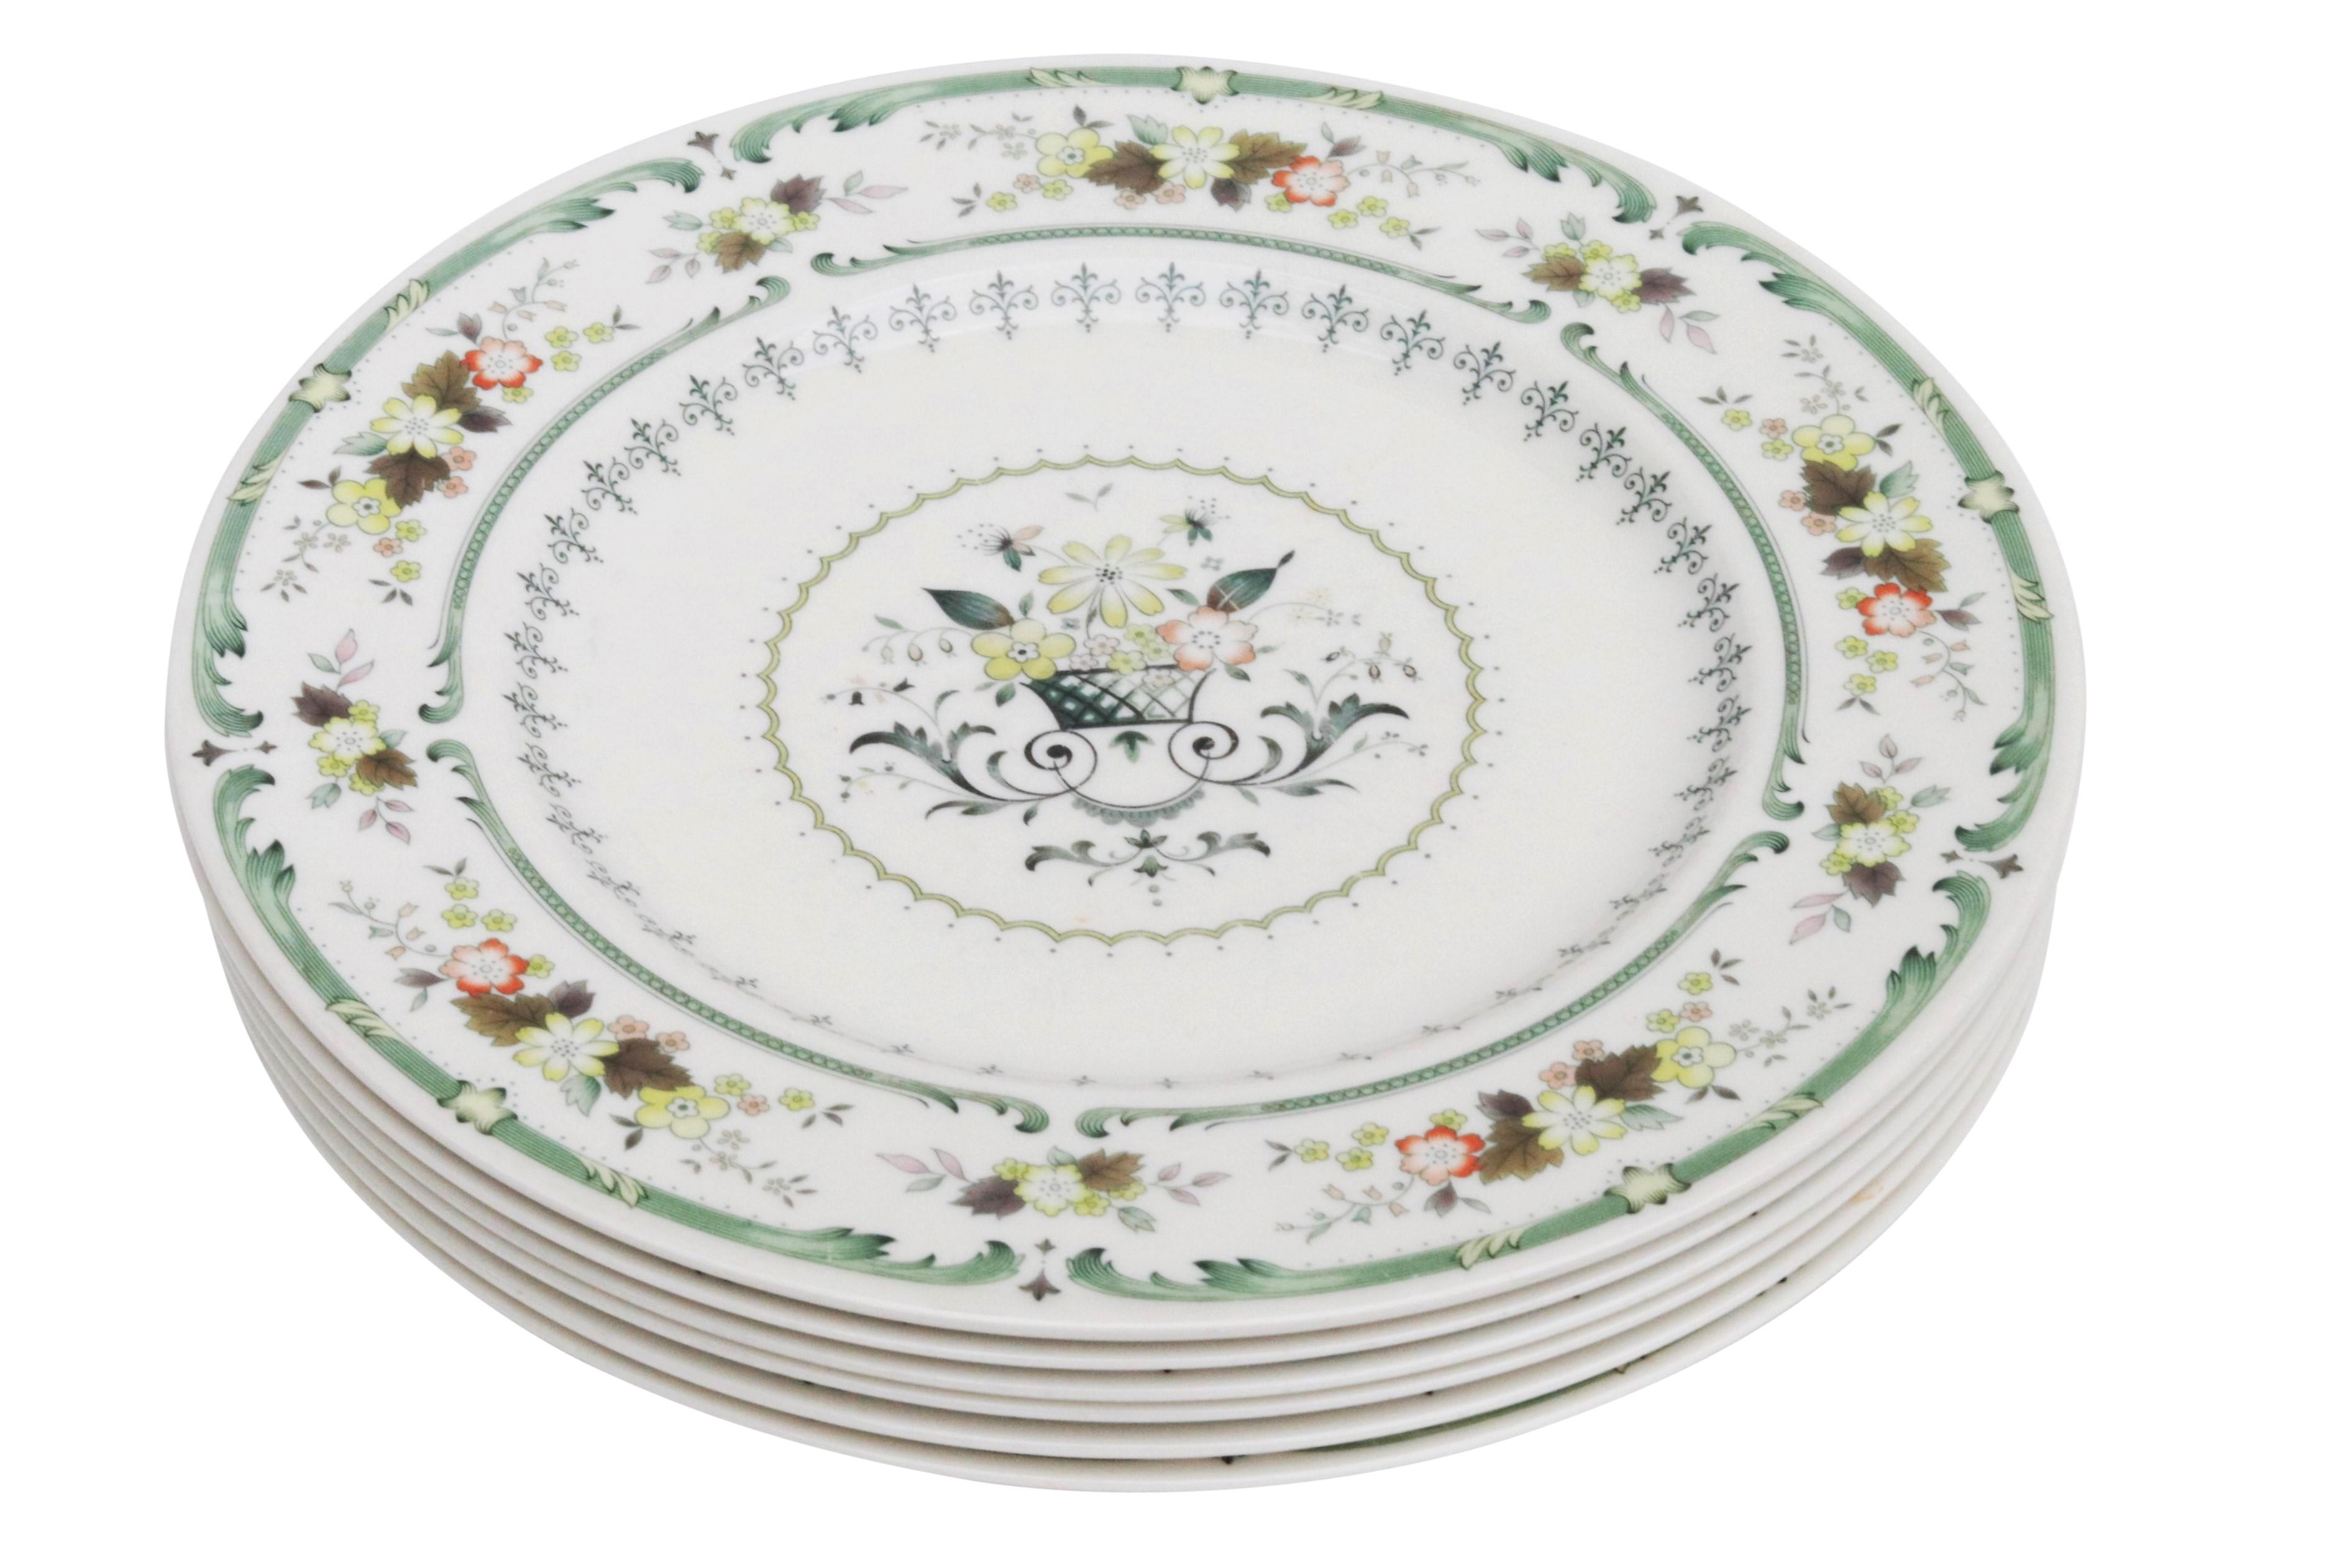 English Fine China Plates by Royal Doulton - Set of 6 - Image 2 of 7  sc 1 st  Chairish & English Fine China Plates by Royal Doulton - Set of 6 | Chairish